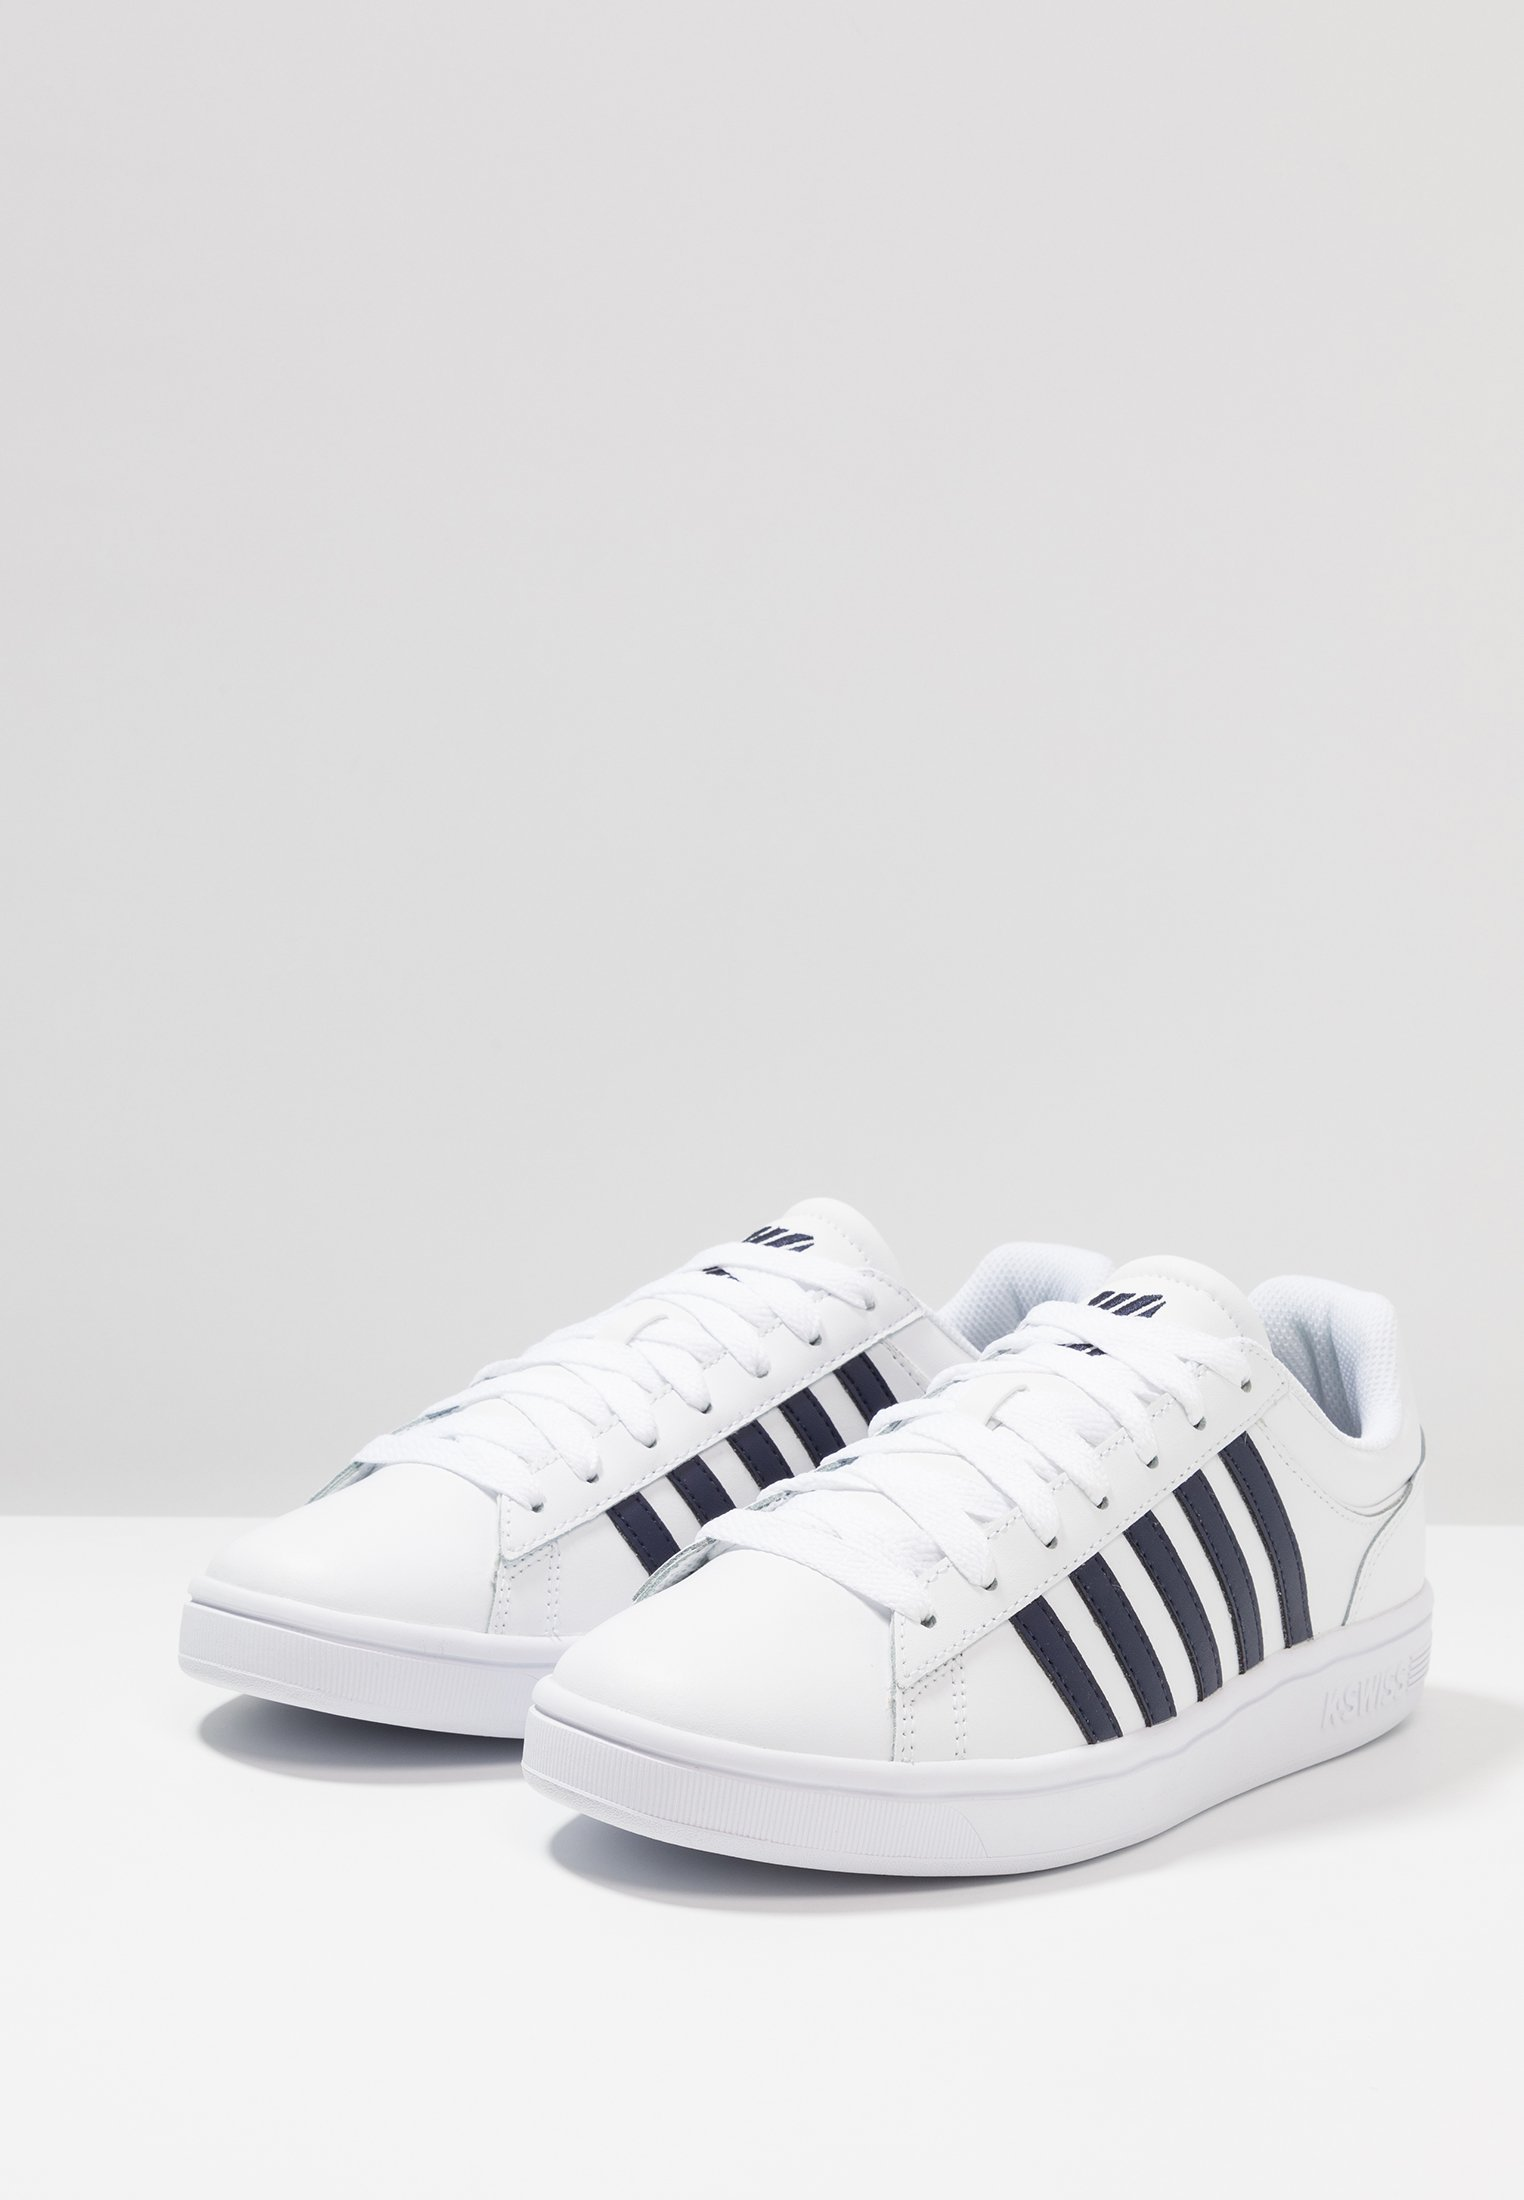 K-SWISS COURT WINSTON - Sneaker low - white/navy/weiß - Herrenschuhe 3ULhB